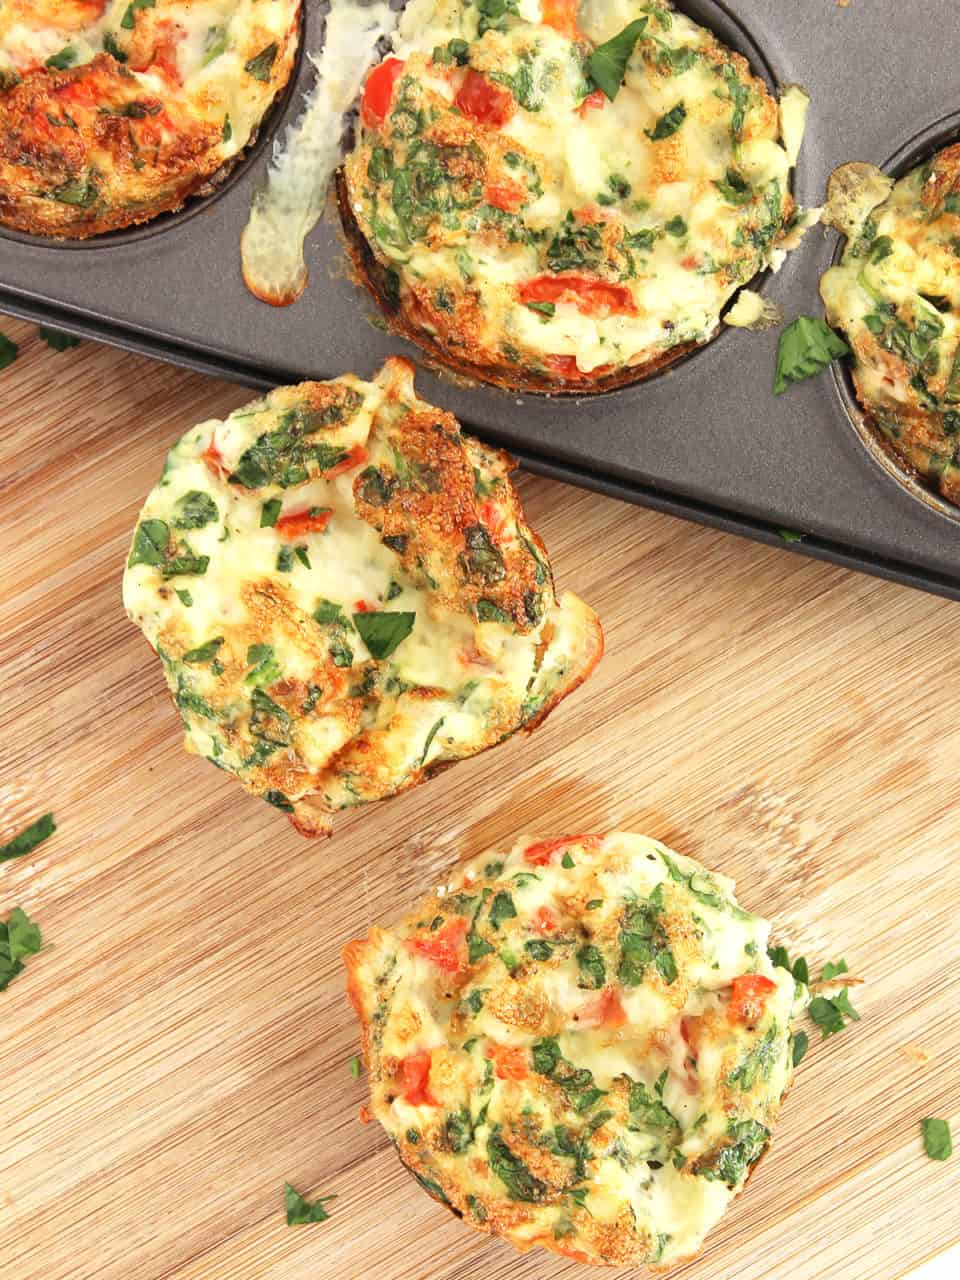 Two egg muffins on a wooden chopping board.